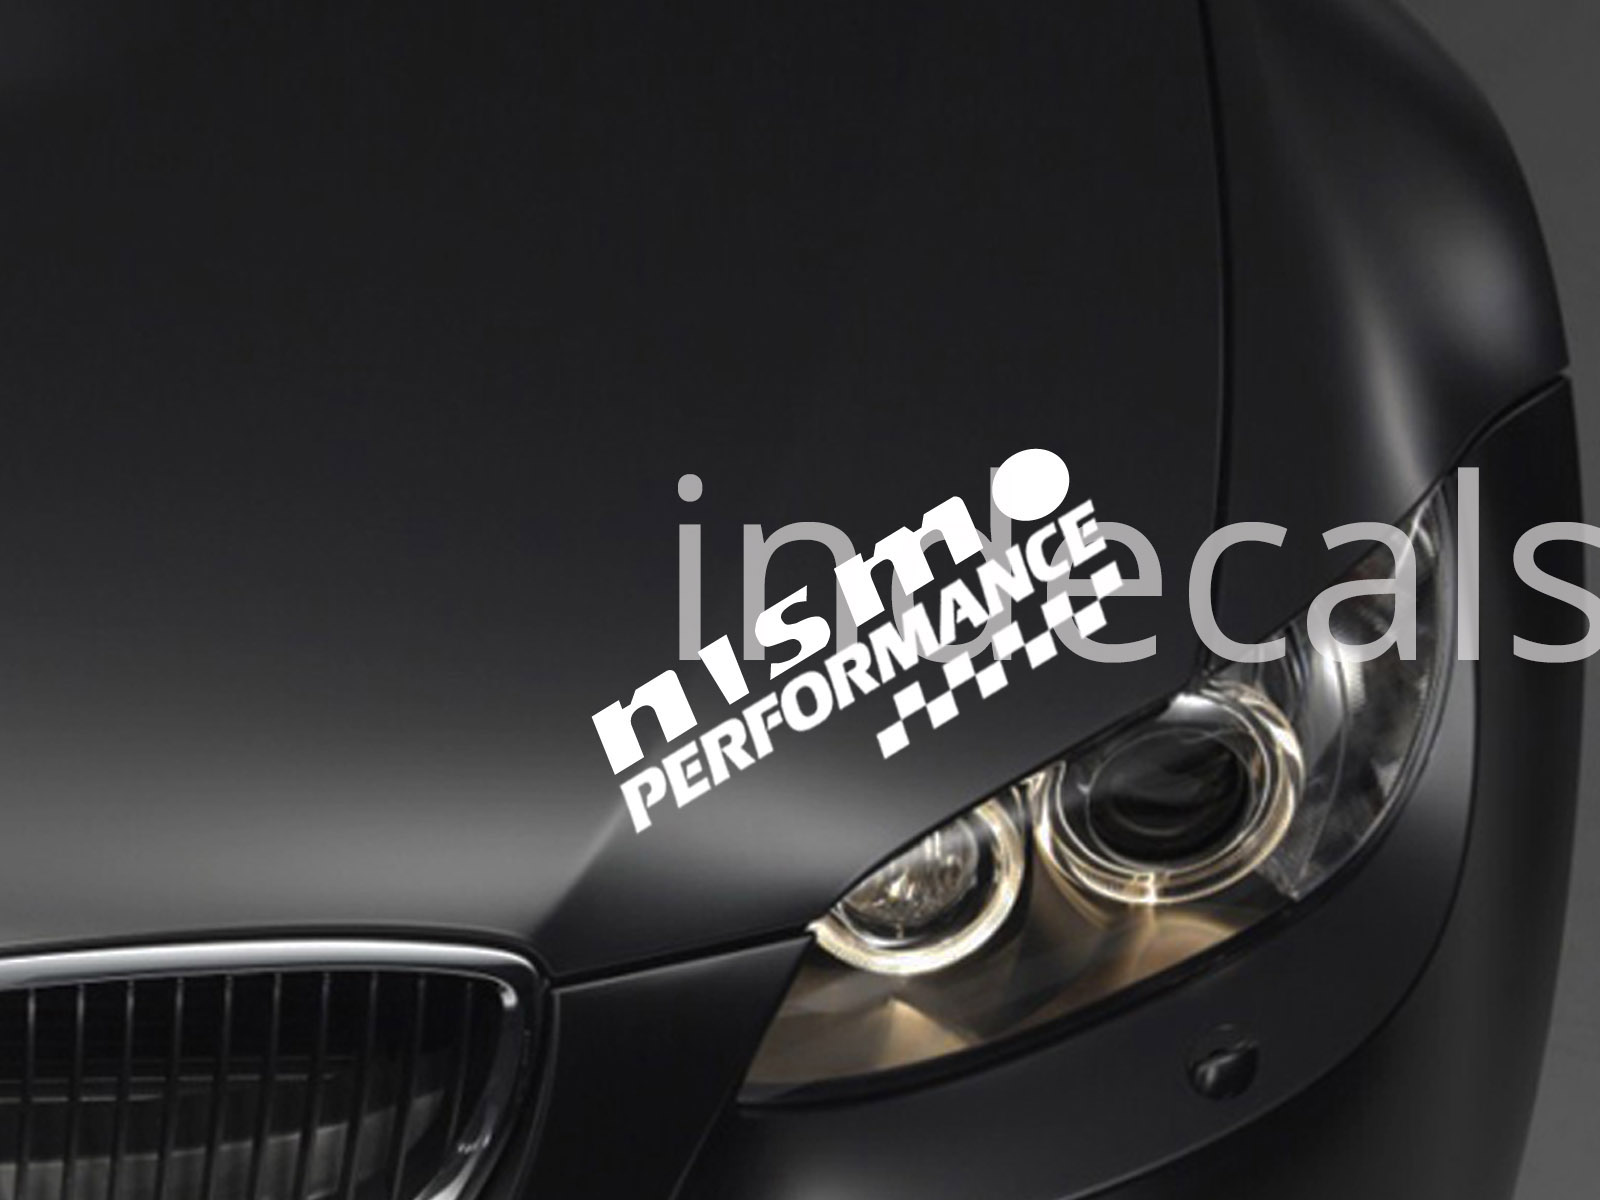 1 x Nismo Performance Sticker for Eyebrow - White